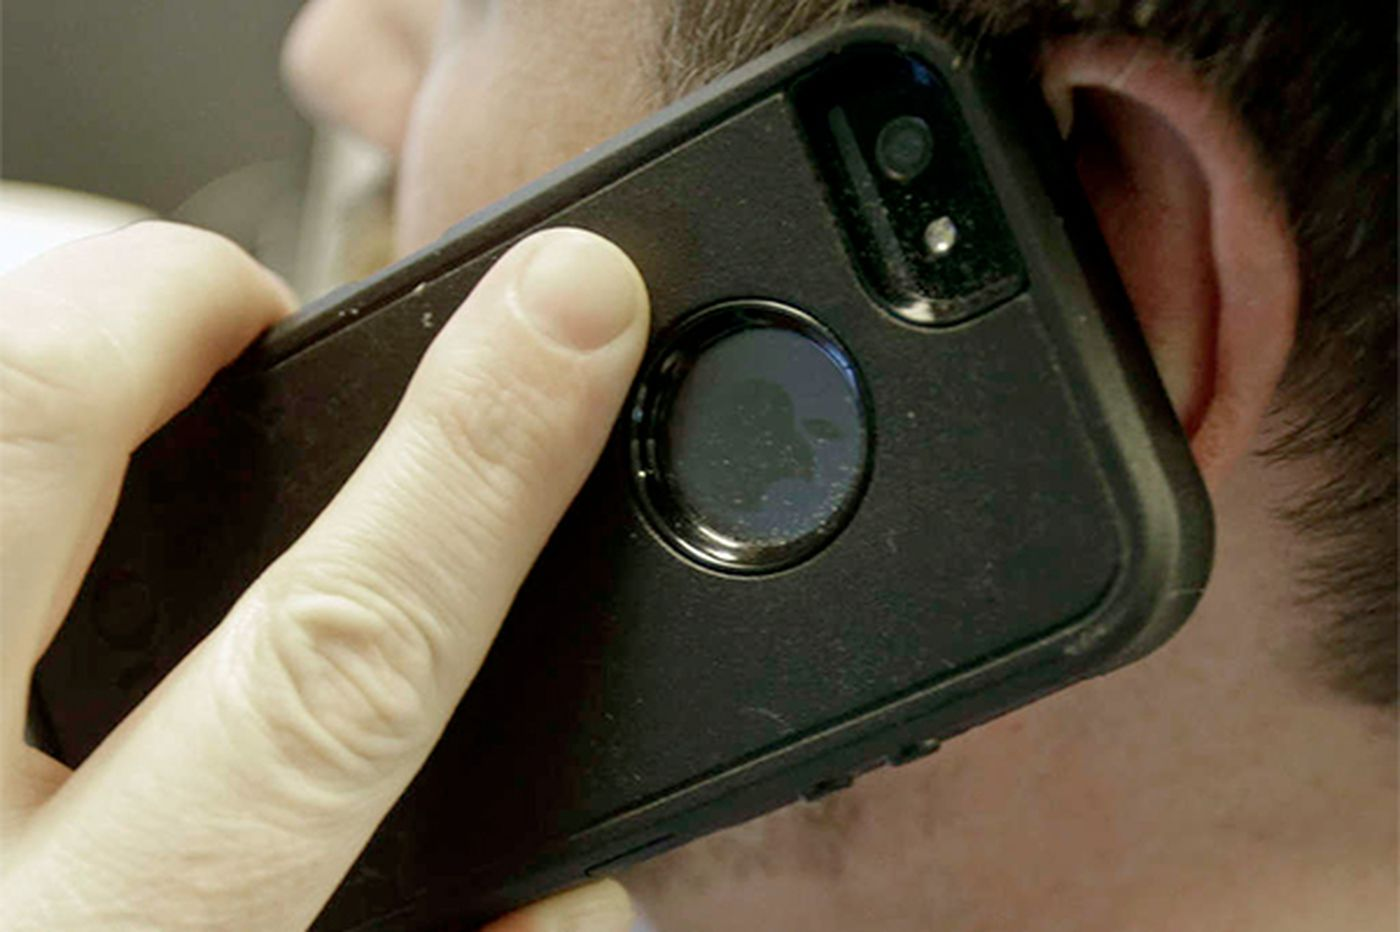 Fighting cellphone theft